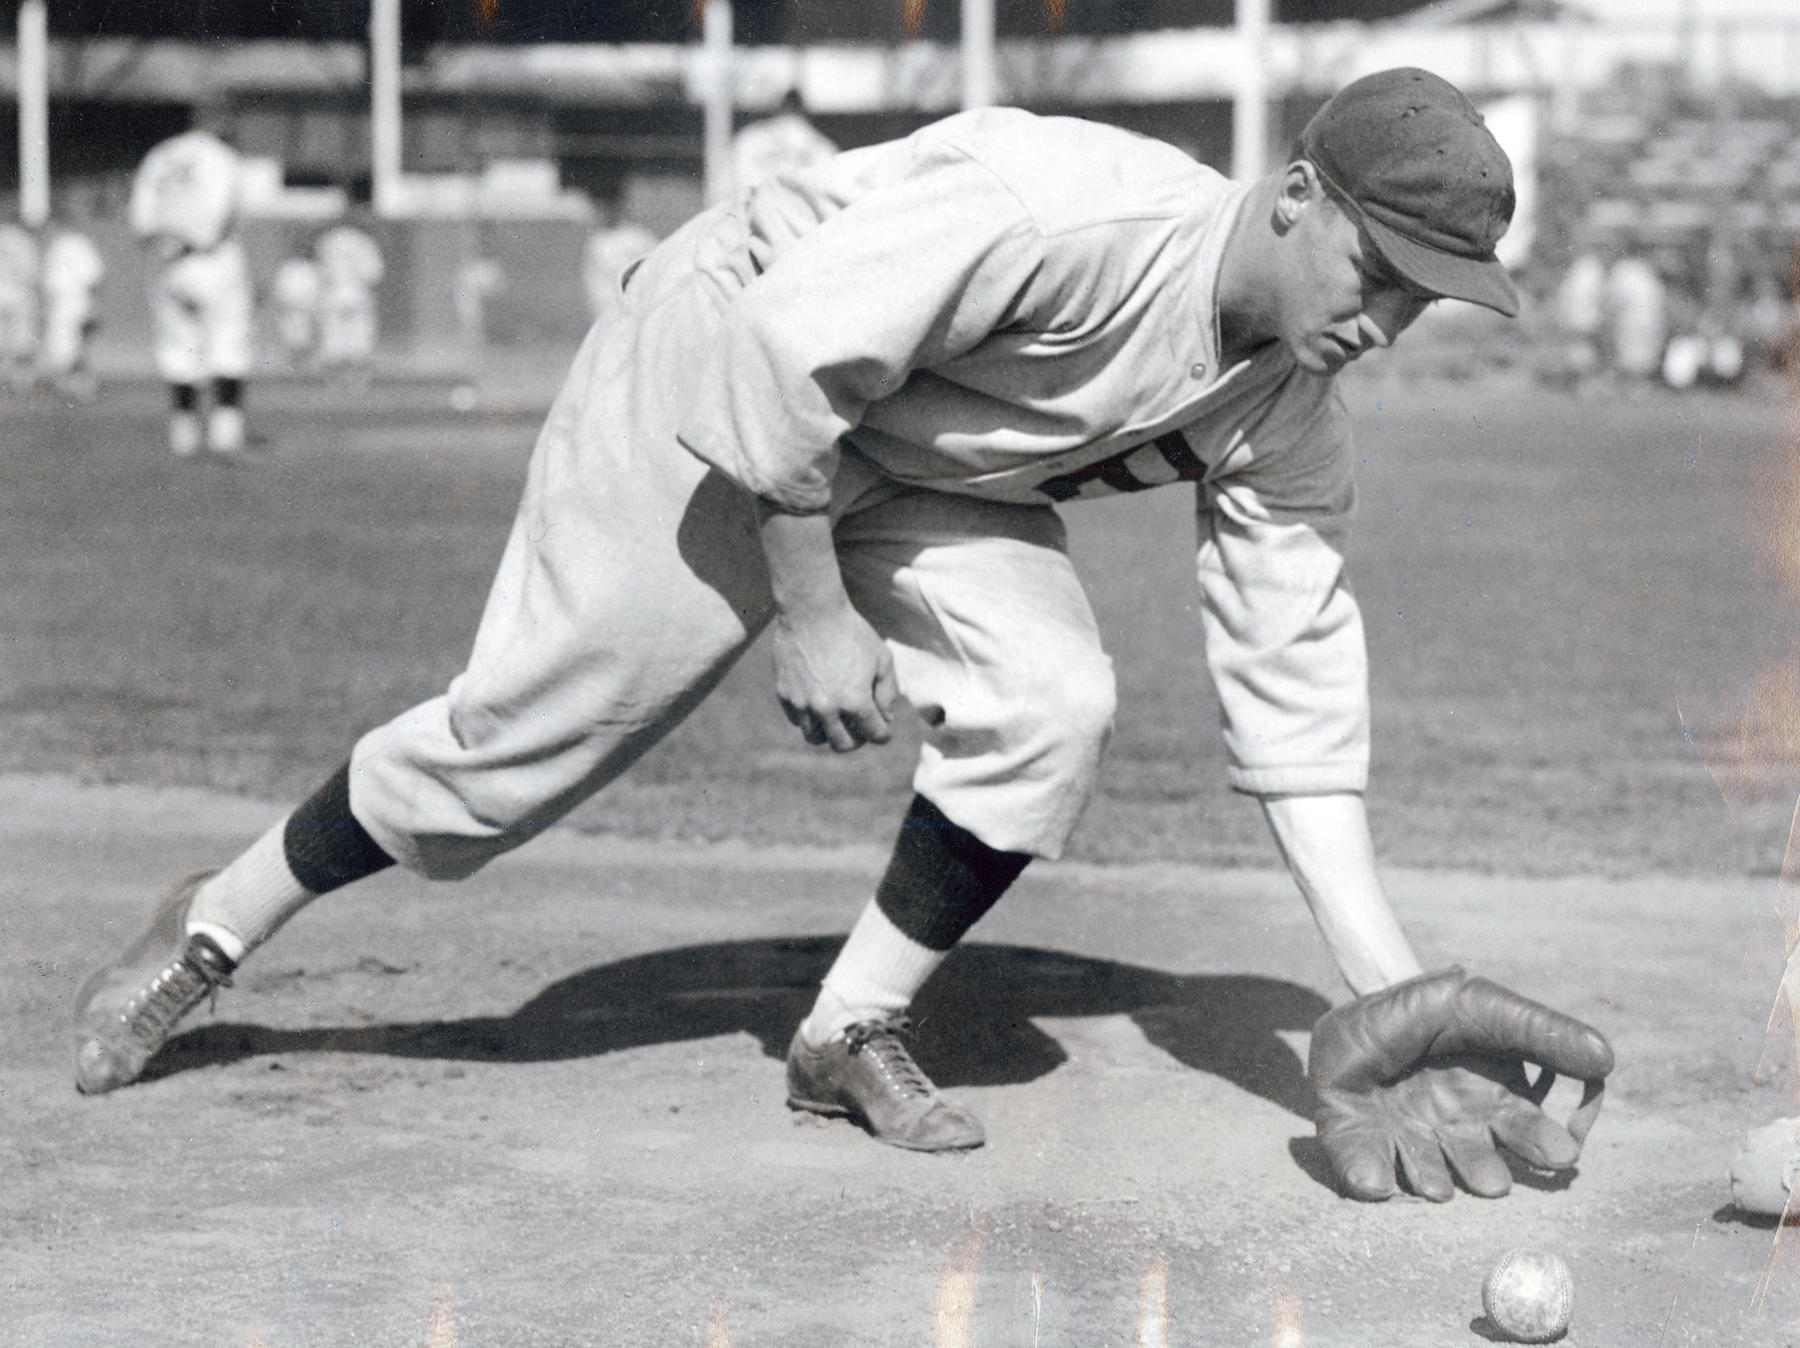 Arky Vaughan fielding a ground ball. BL-3787.68 (National Baseball Hall of Fame Library)